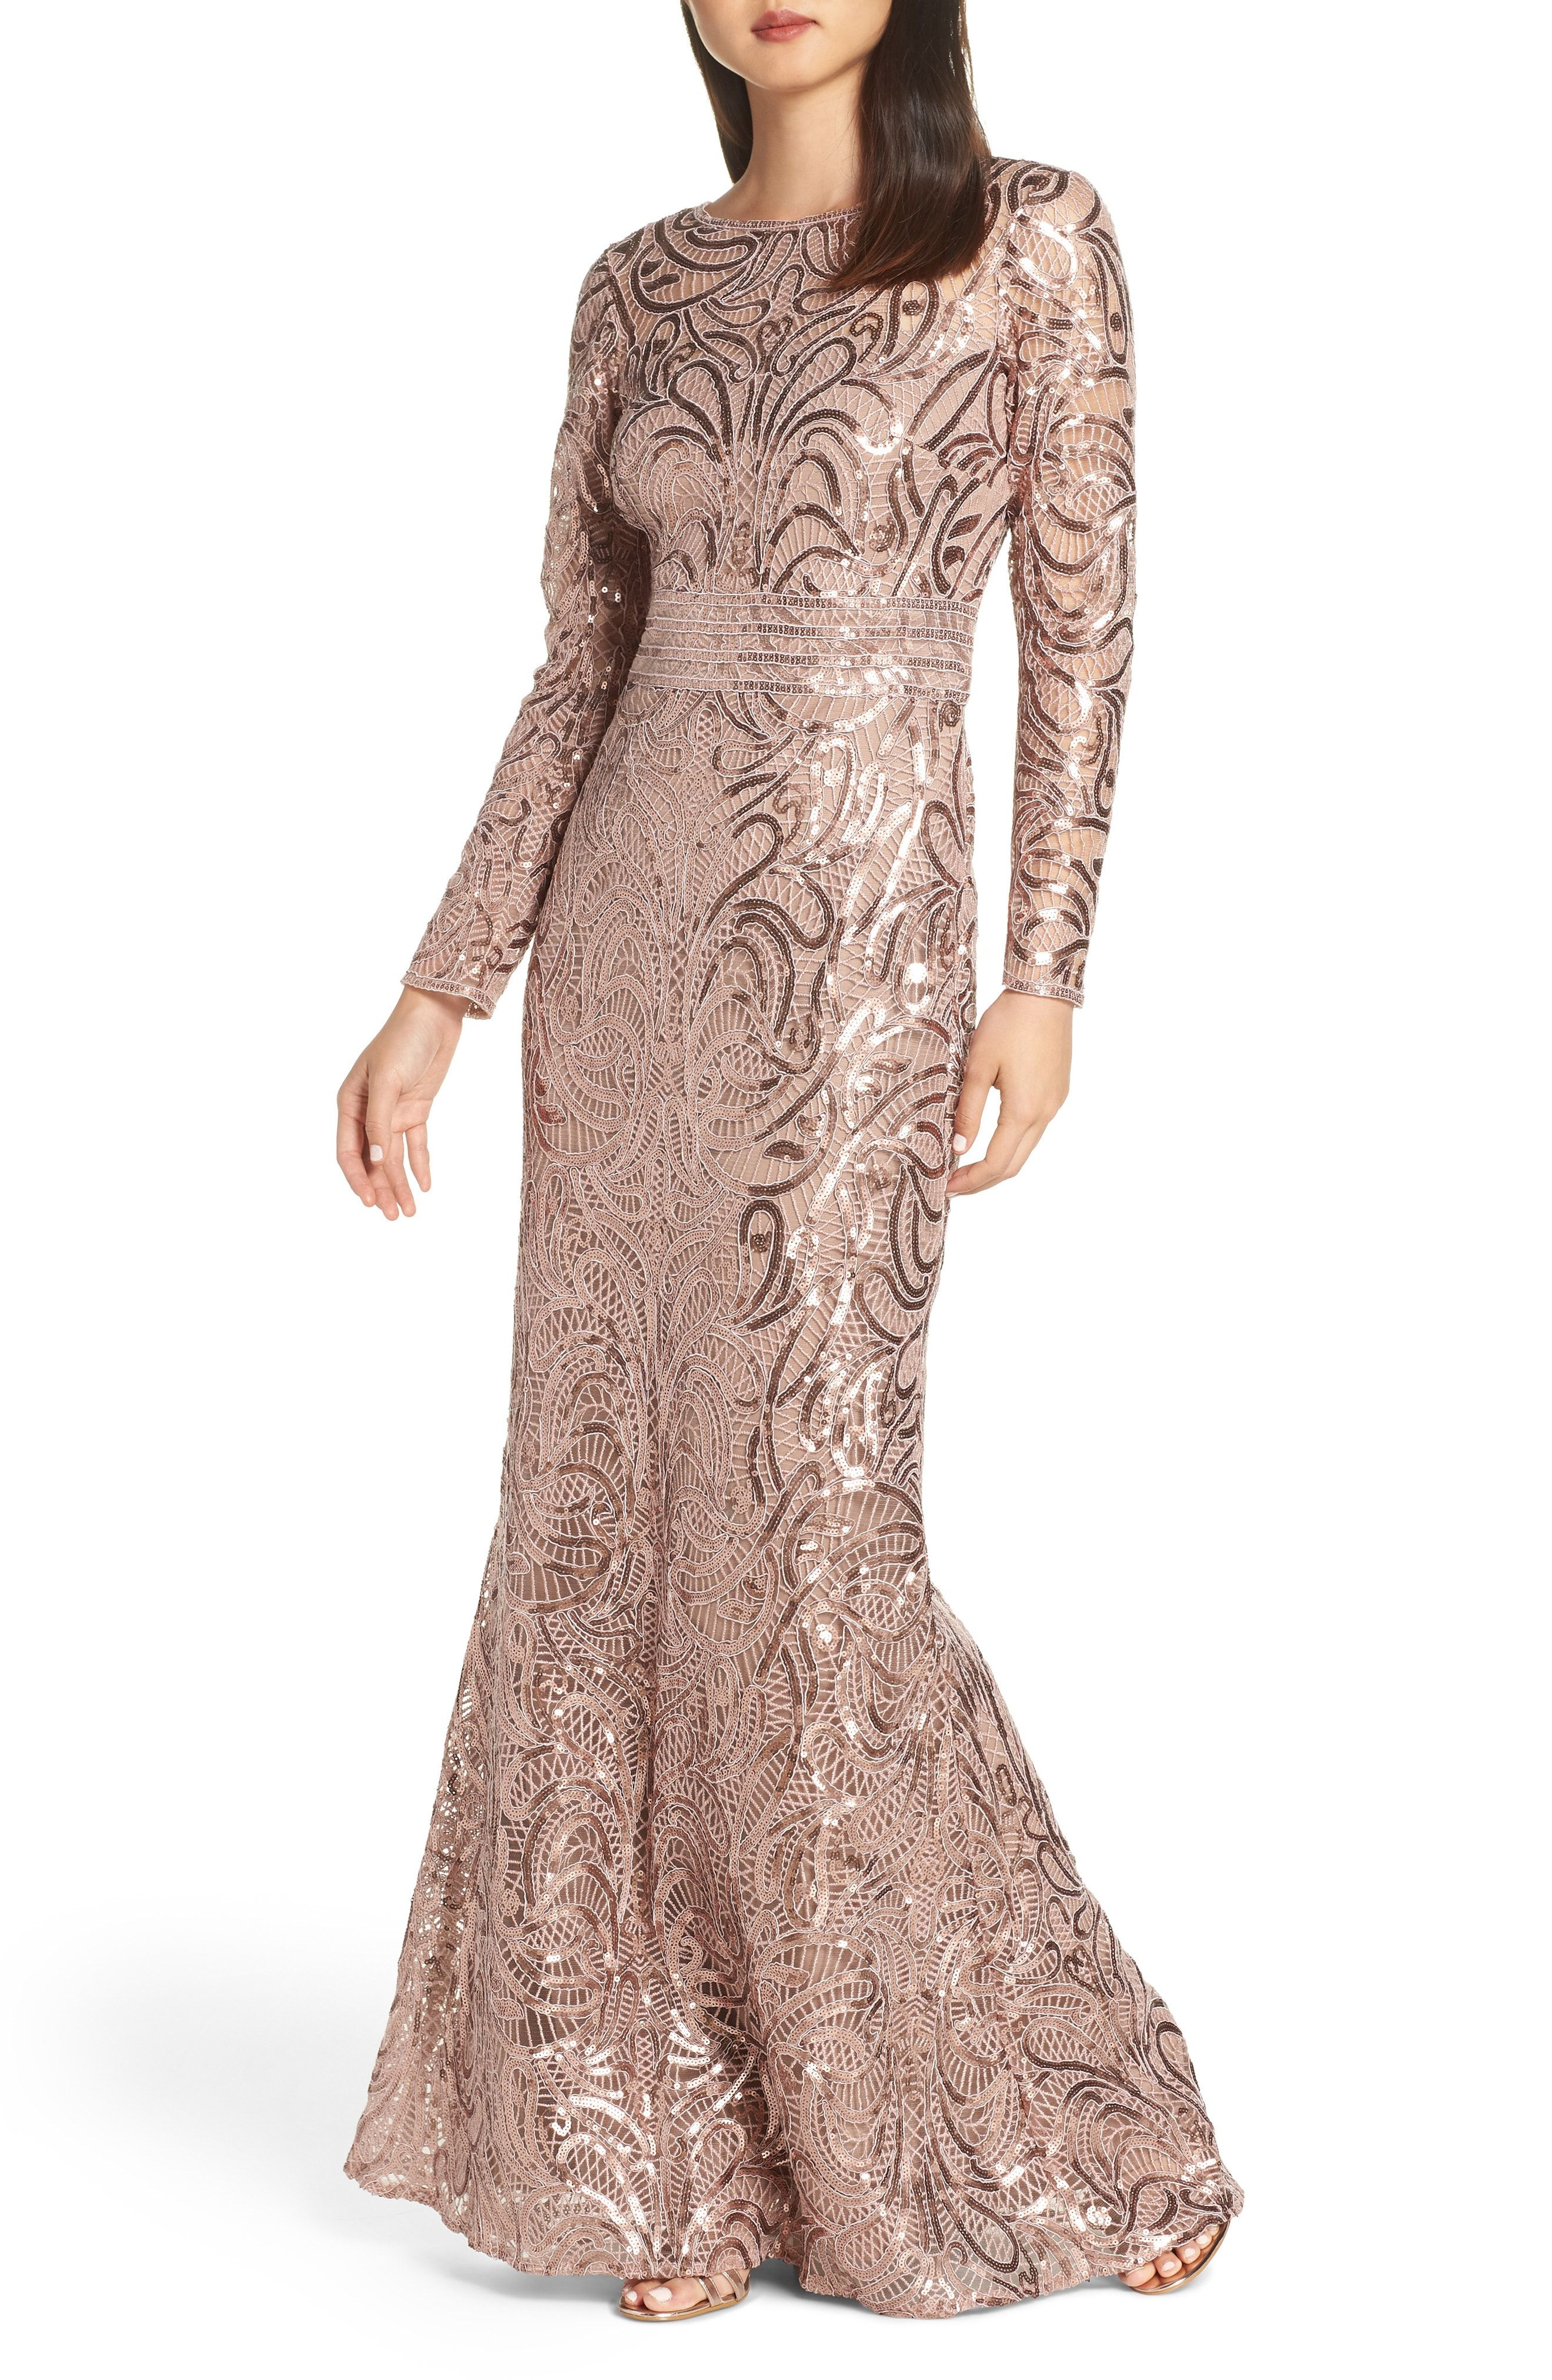 Amazing Sequin Rose Gold Gown Gorgeous Mother Of The Bride Dress With Long Sleeves T Bridesmaid Dresses Long Lace Mermaid Gown Mother Of The Bride Dresses